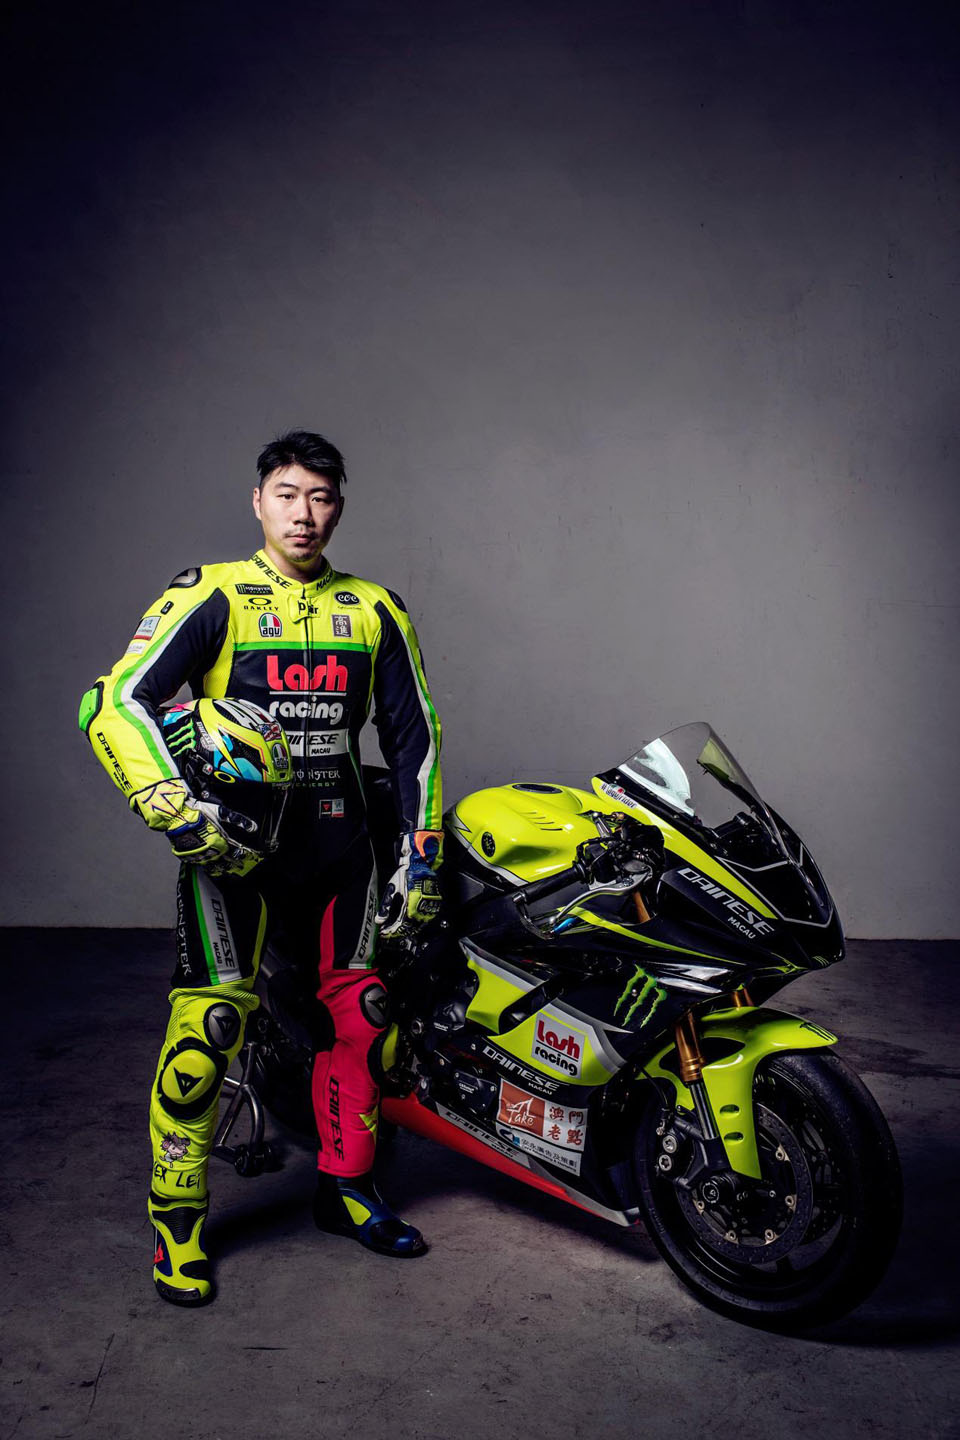 2018 DAINESE Lash Racing Team